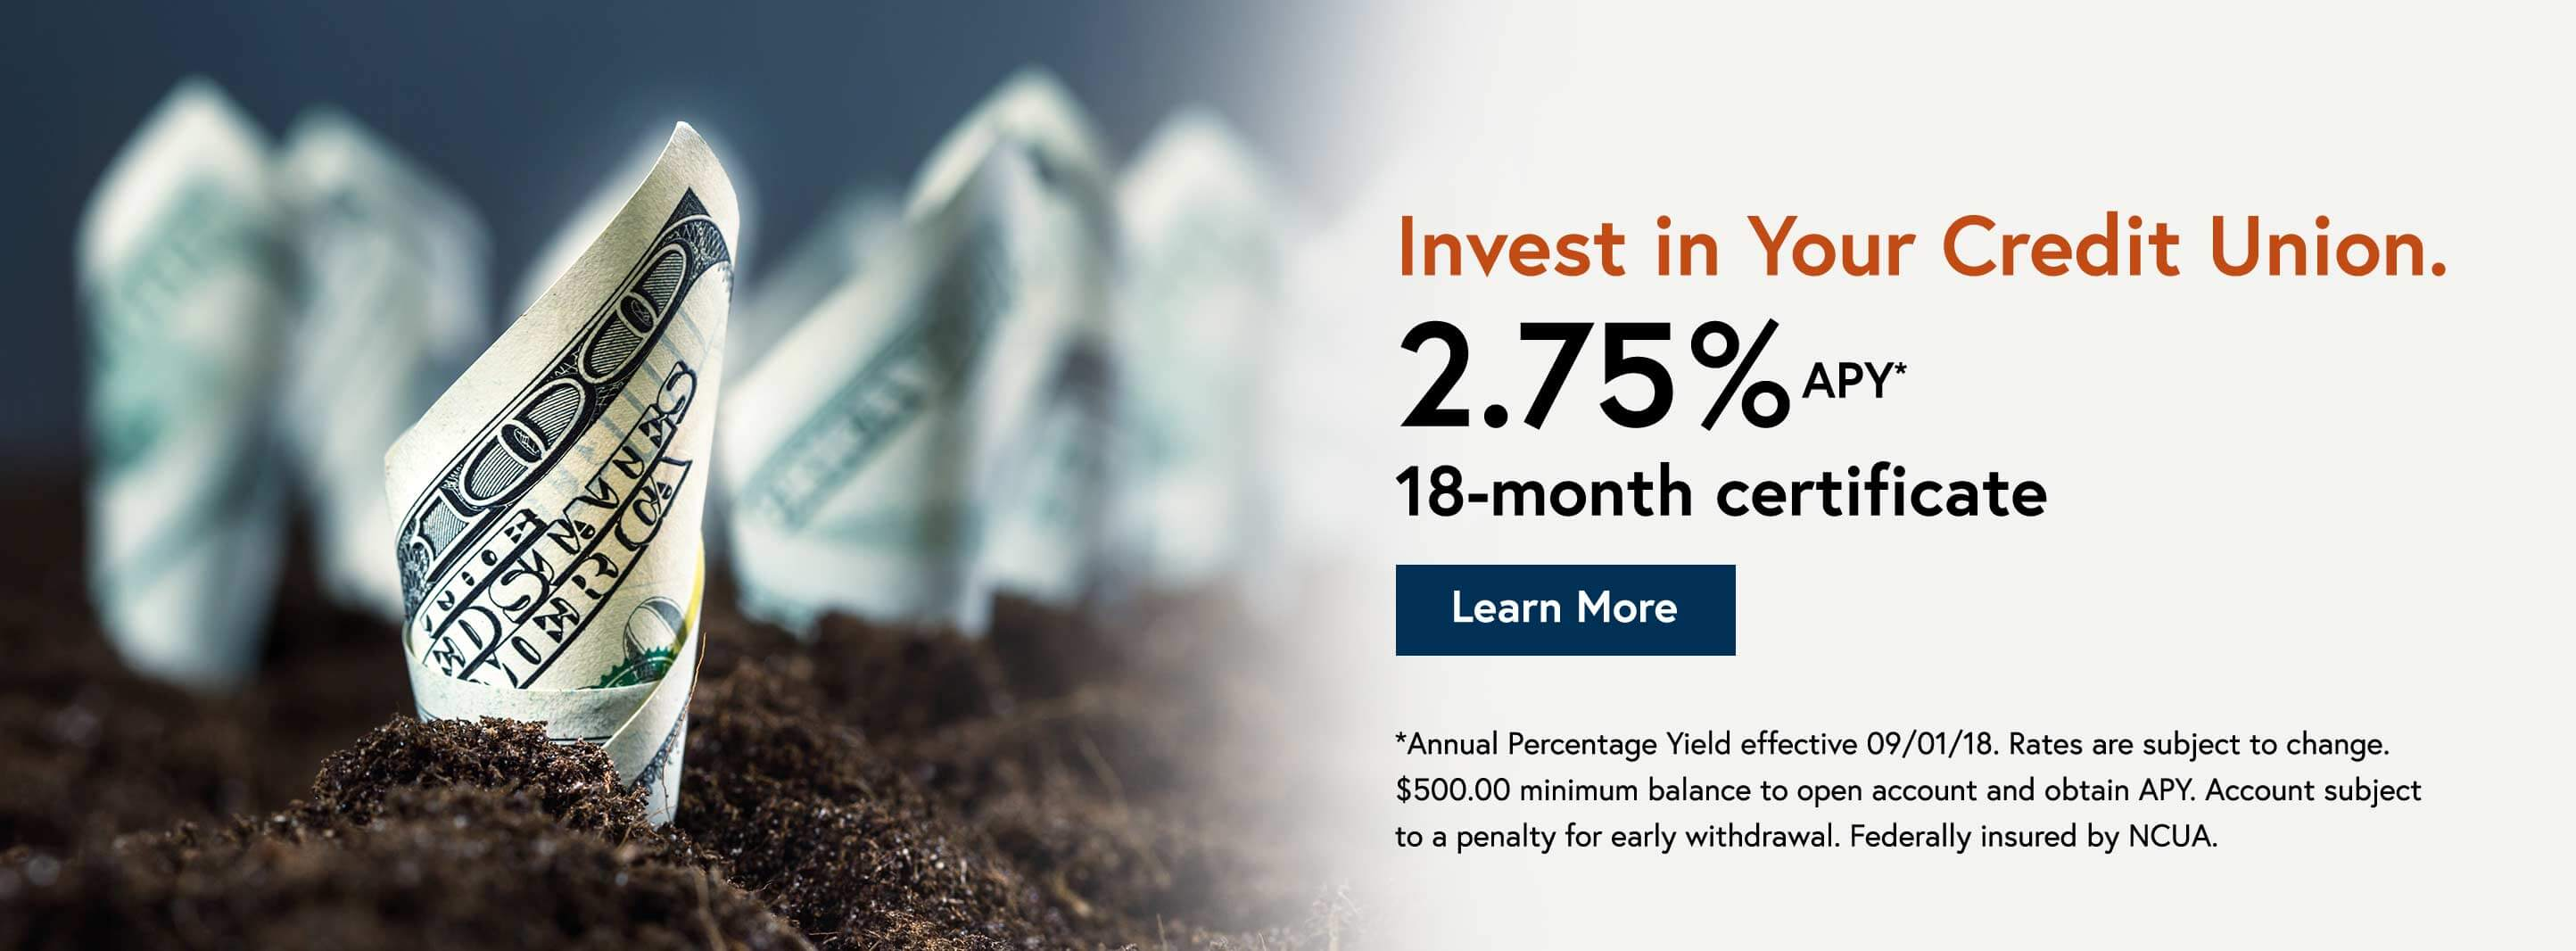 Invest in Your Credit Union.   2.75% APY* 18-month certificate. Learn More.